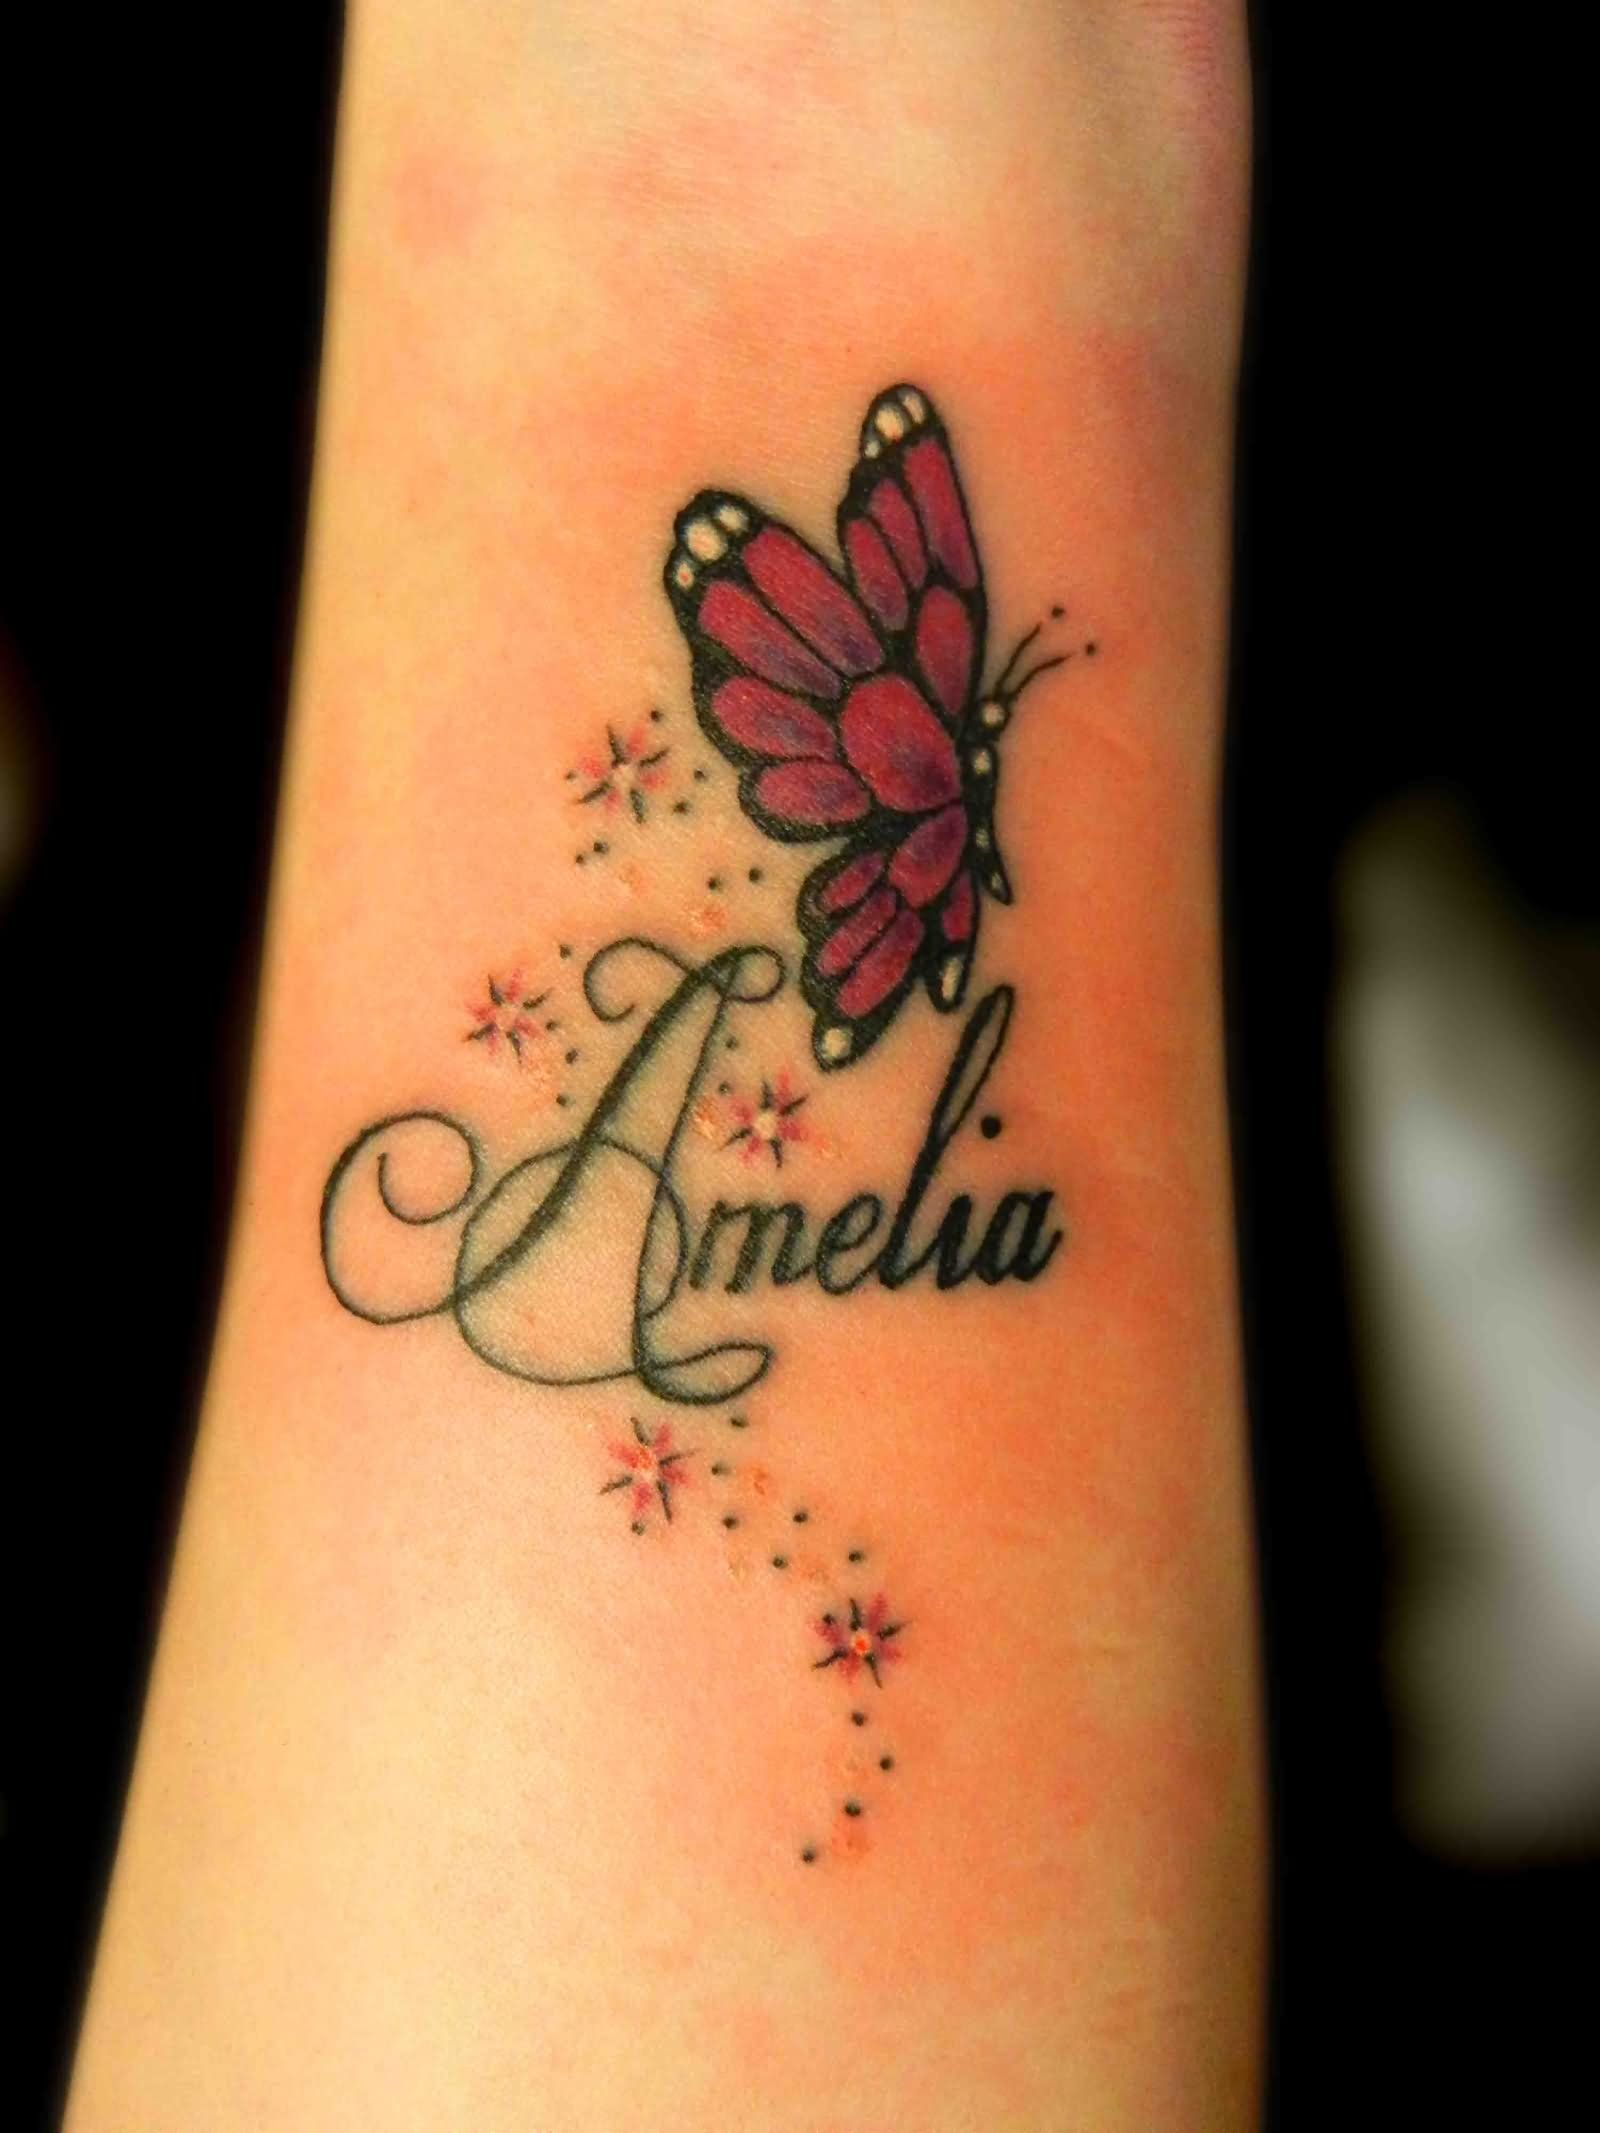 baby name tattoo designs on wrist 18 baby name tattoos name tattoo designs butterfly baby feet. Black Bedroom Furniture Sets. Home Design Ideas